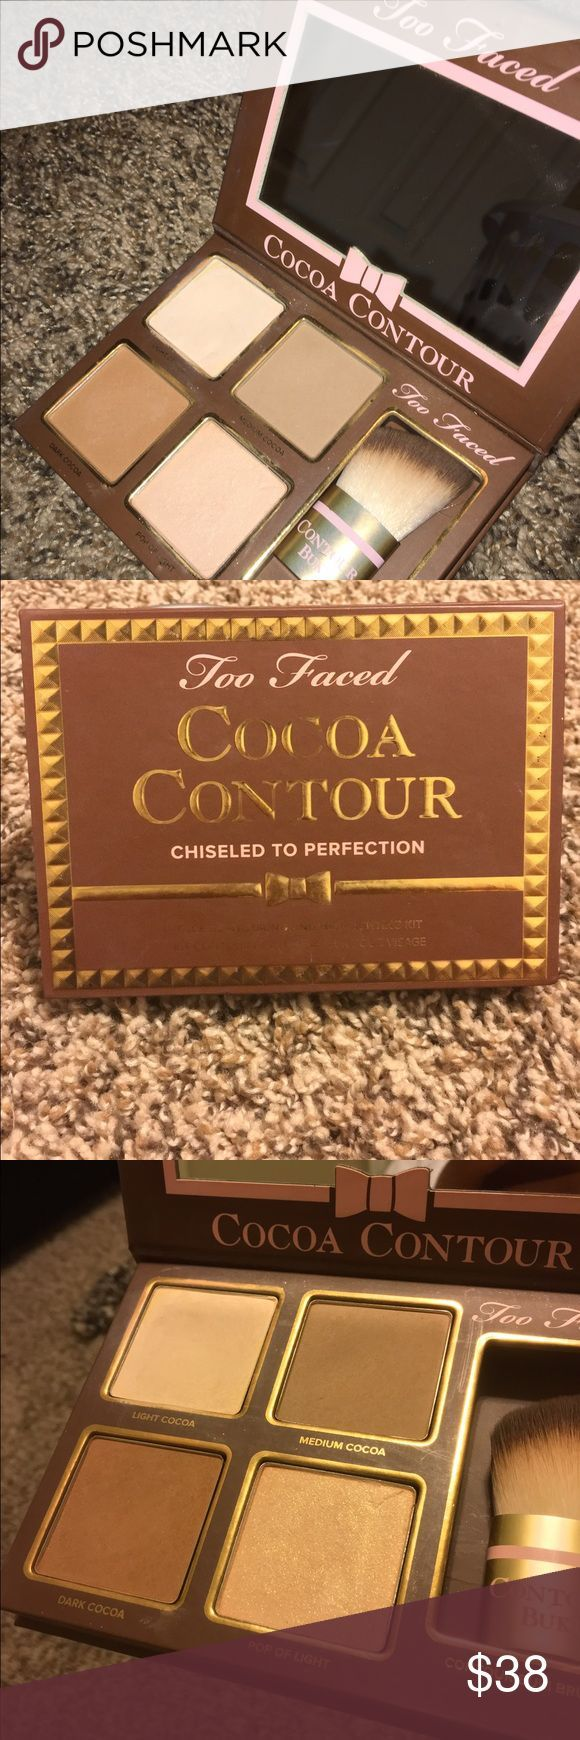 New Too faced contour kit! TWO FACED cocoa contour is basically brand new! I used two shades the two top ones and only 3times! The brush is brand new and unused. No boxes. No trades. I only accept offers through the offer button. Too Faced Makeup Bronzer